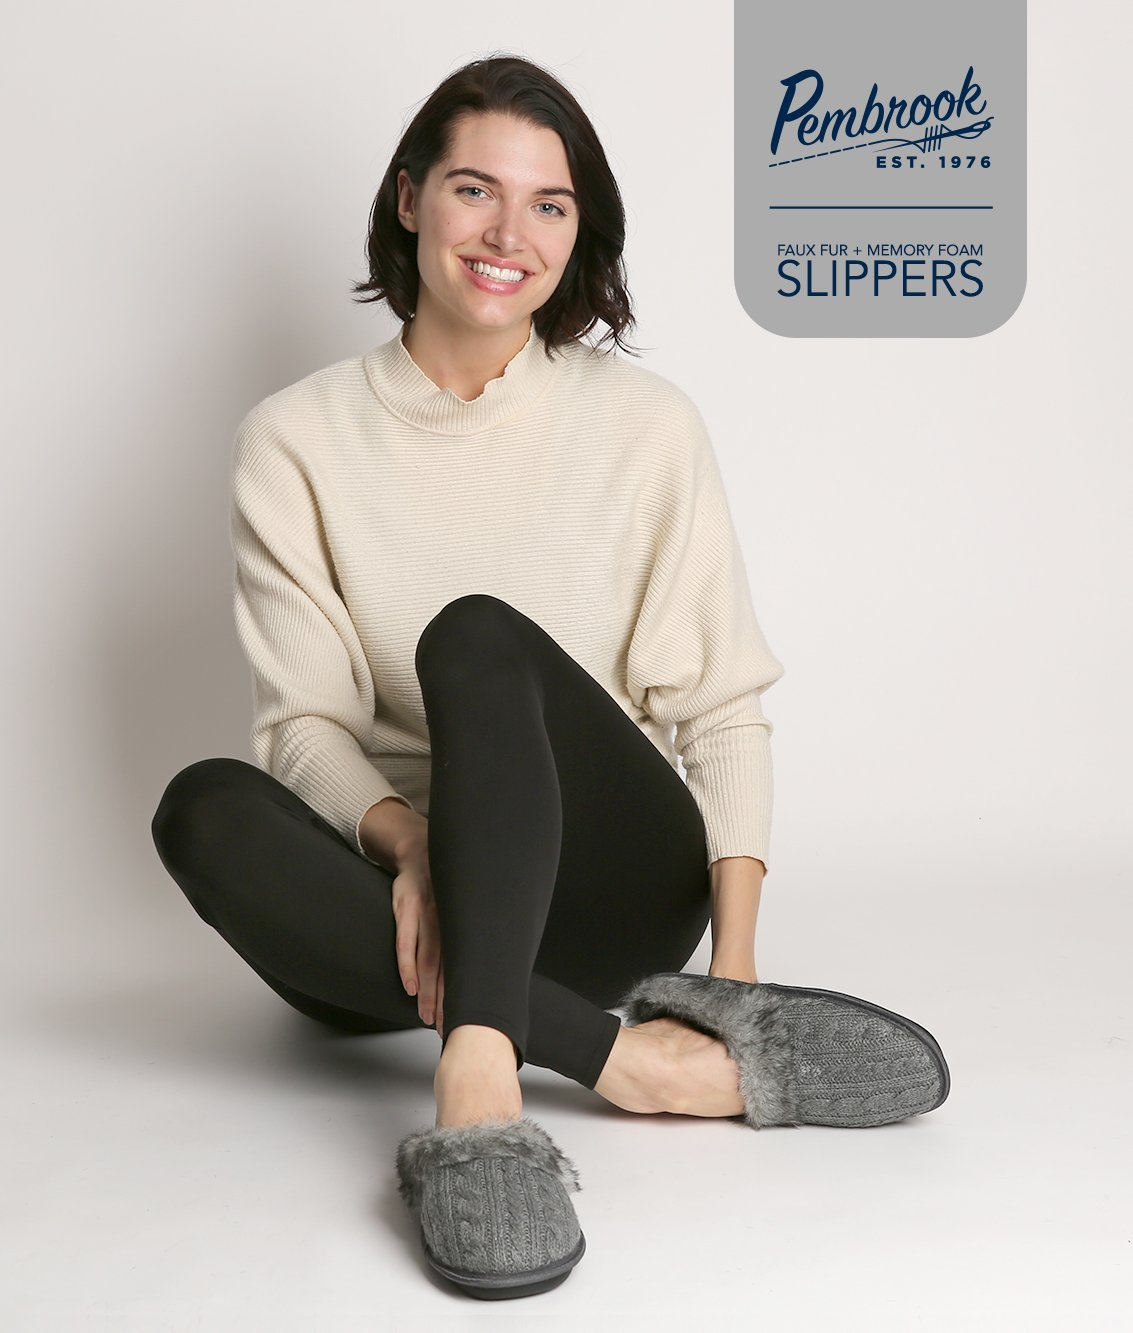 Pembrook Ladies Faux Fur + Cable Knit Slippers – Gray, Large - Comfortable Memory Foam Indoor and Outdoor Non-Skid Sole - Great Plush Slip on House Shoes for adults, women, girls by Pembrook (Image #4)